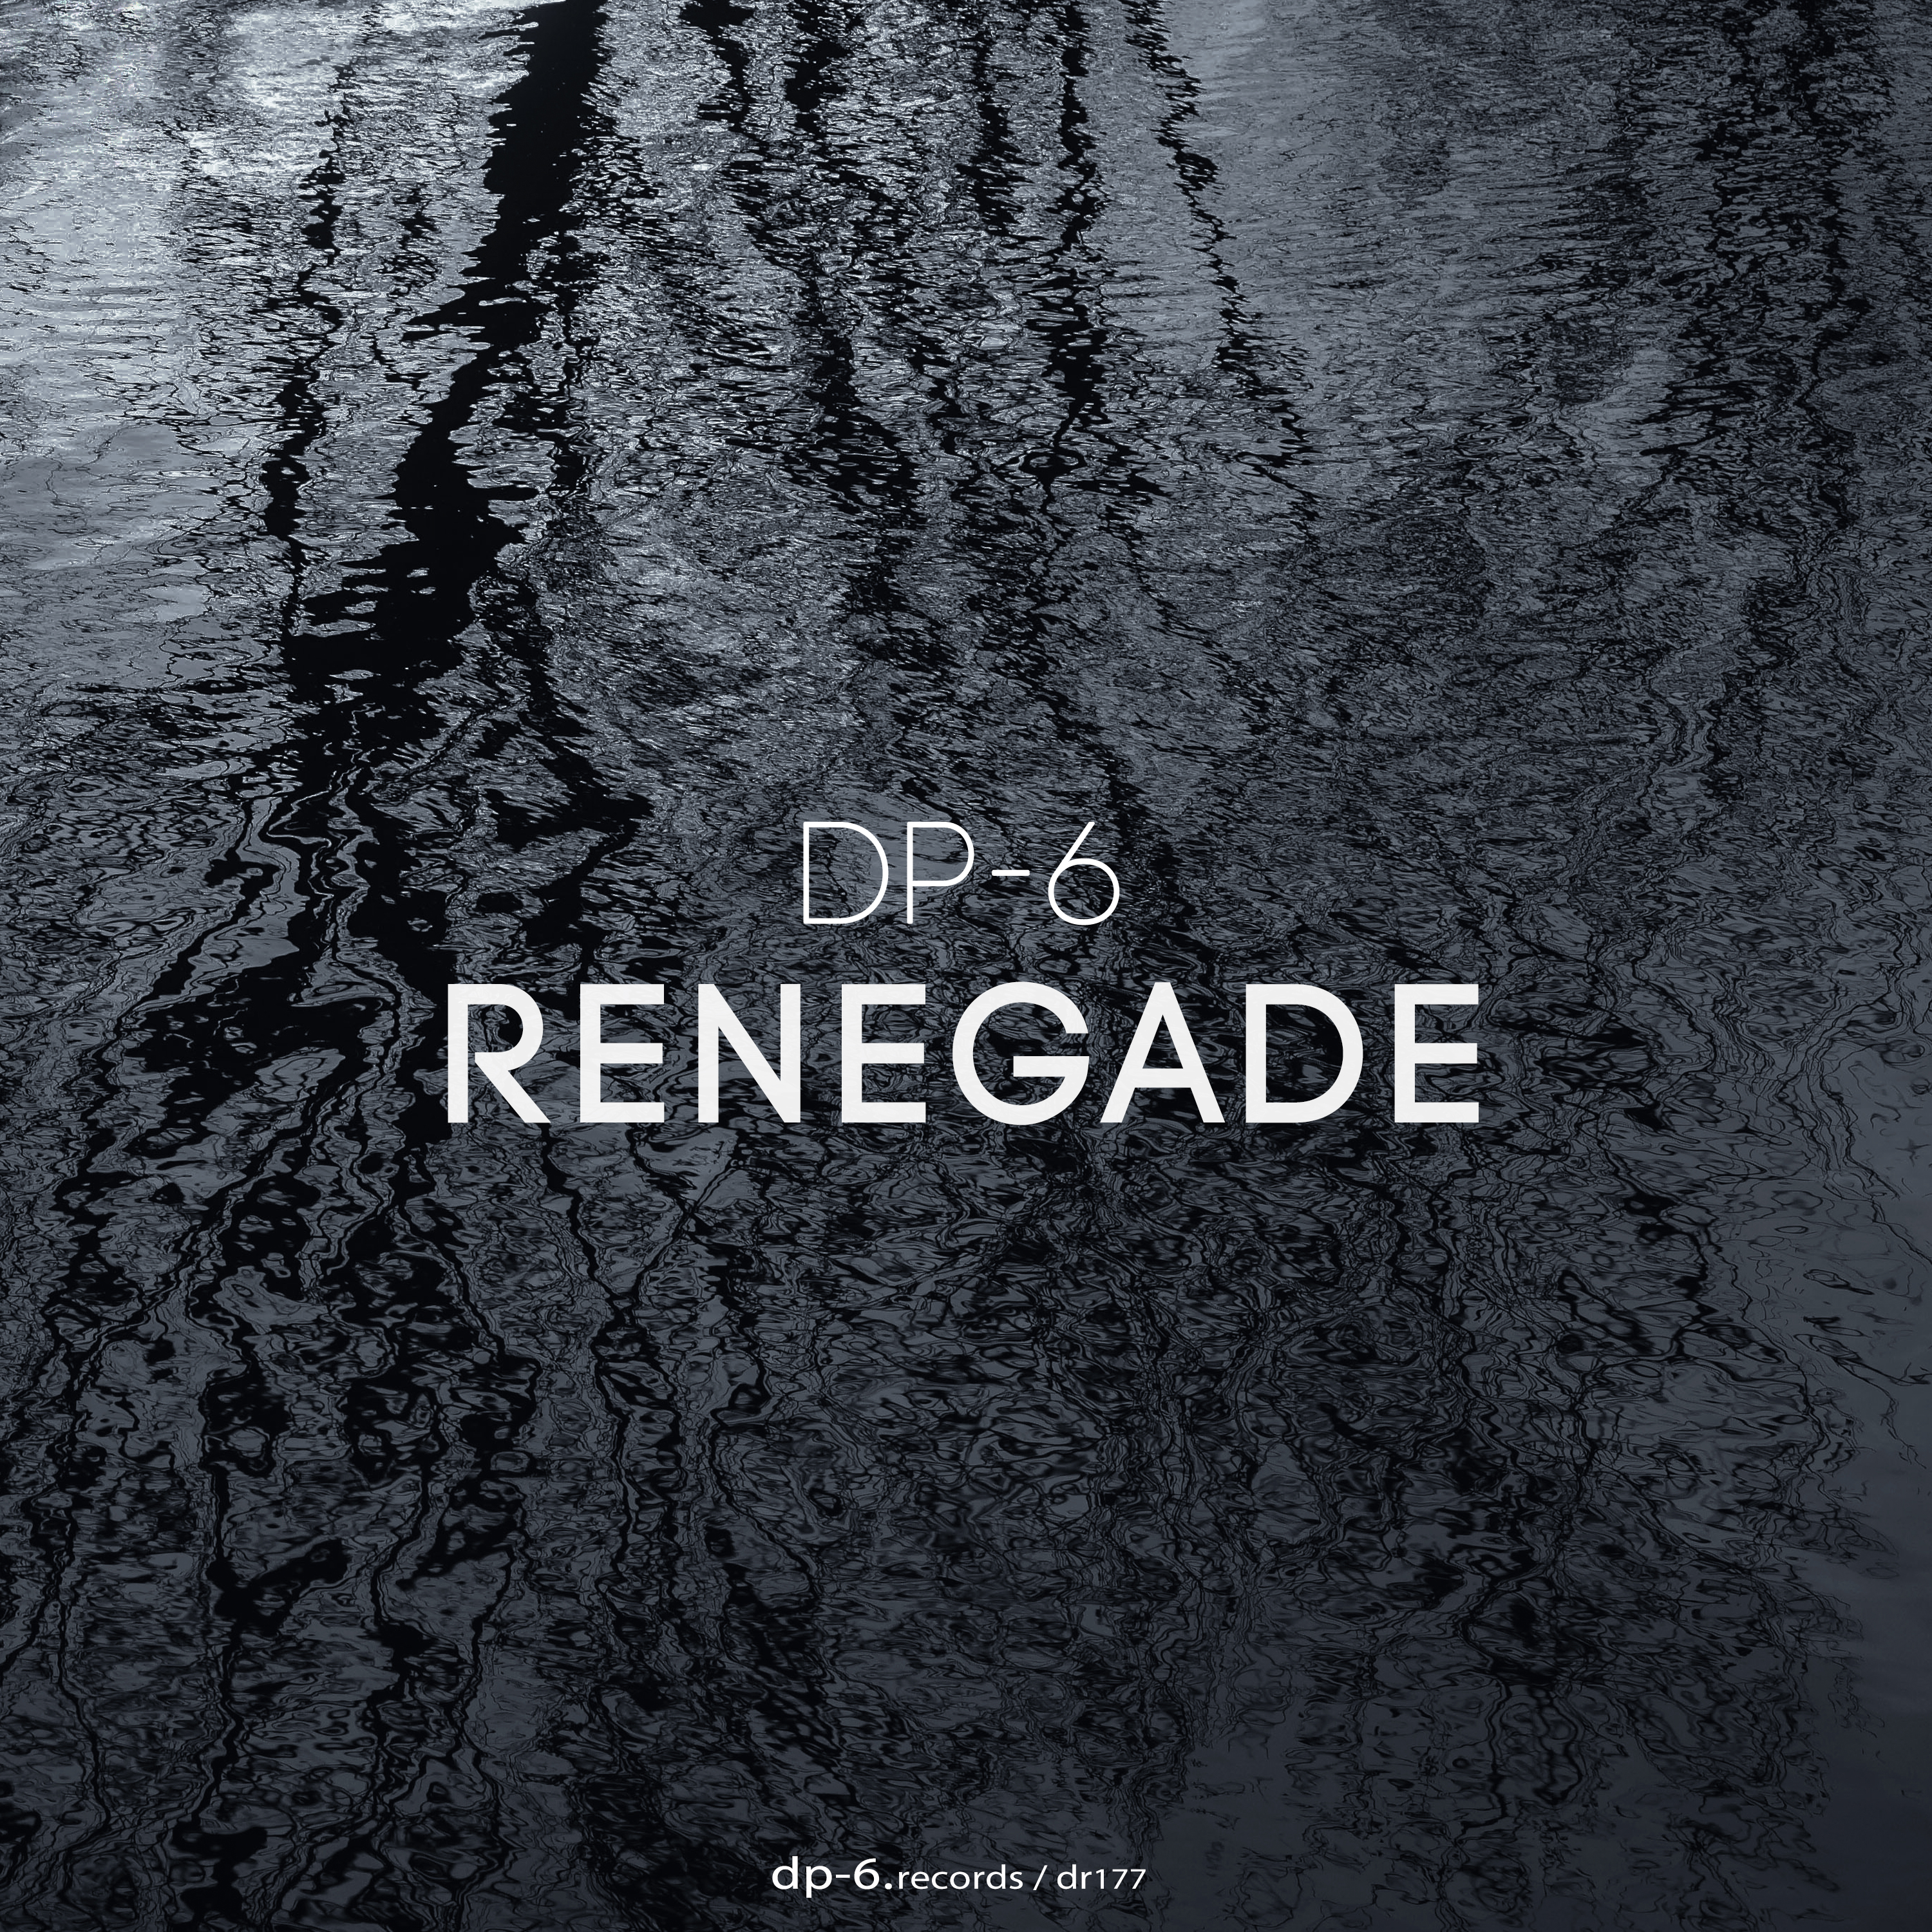 DP-6: Renegade